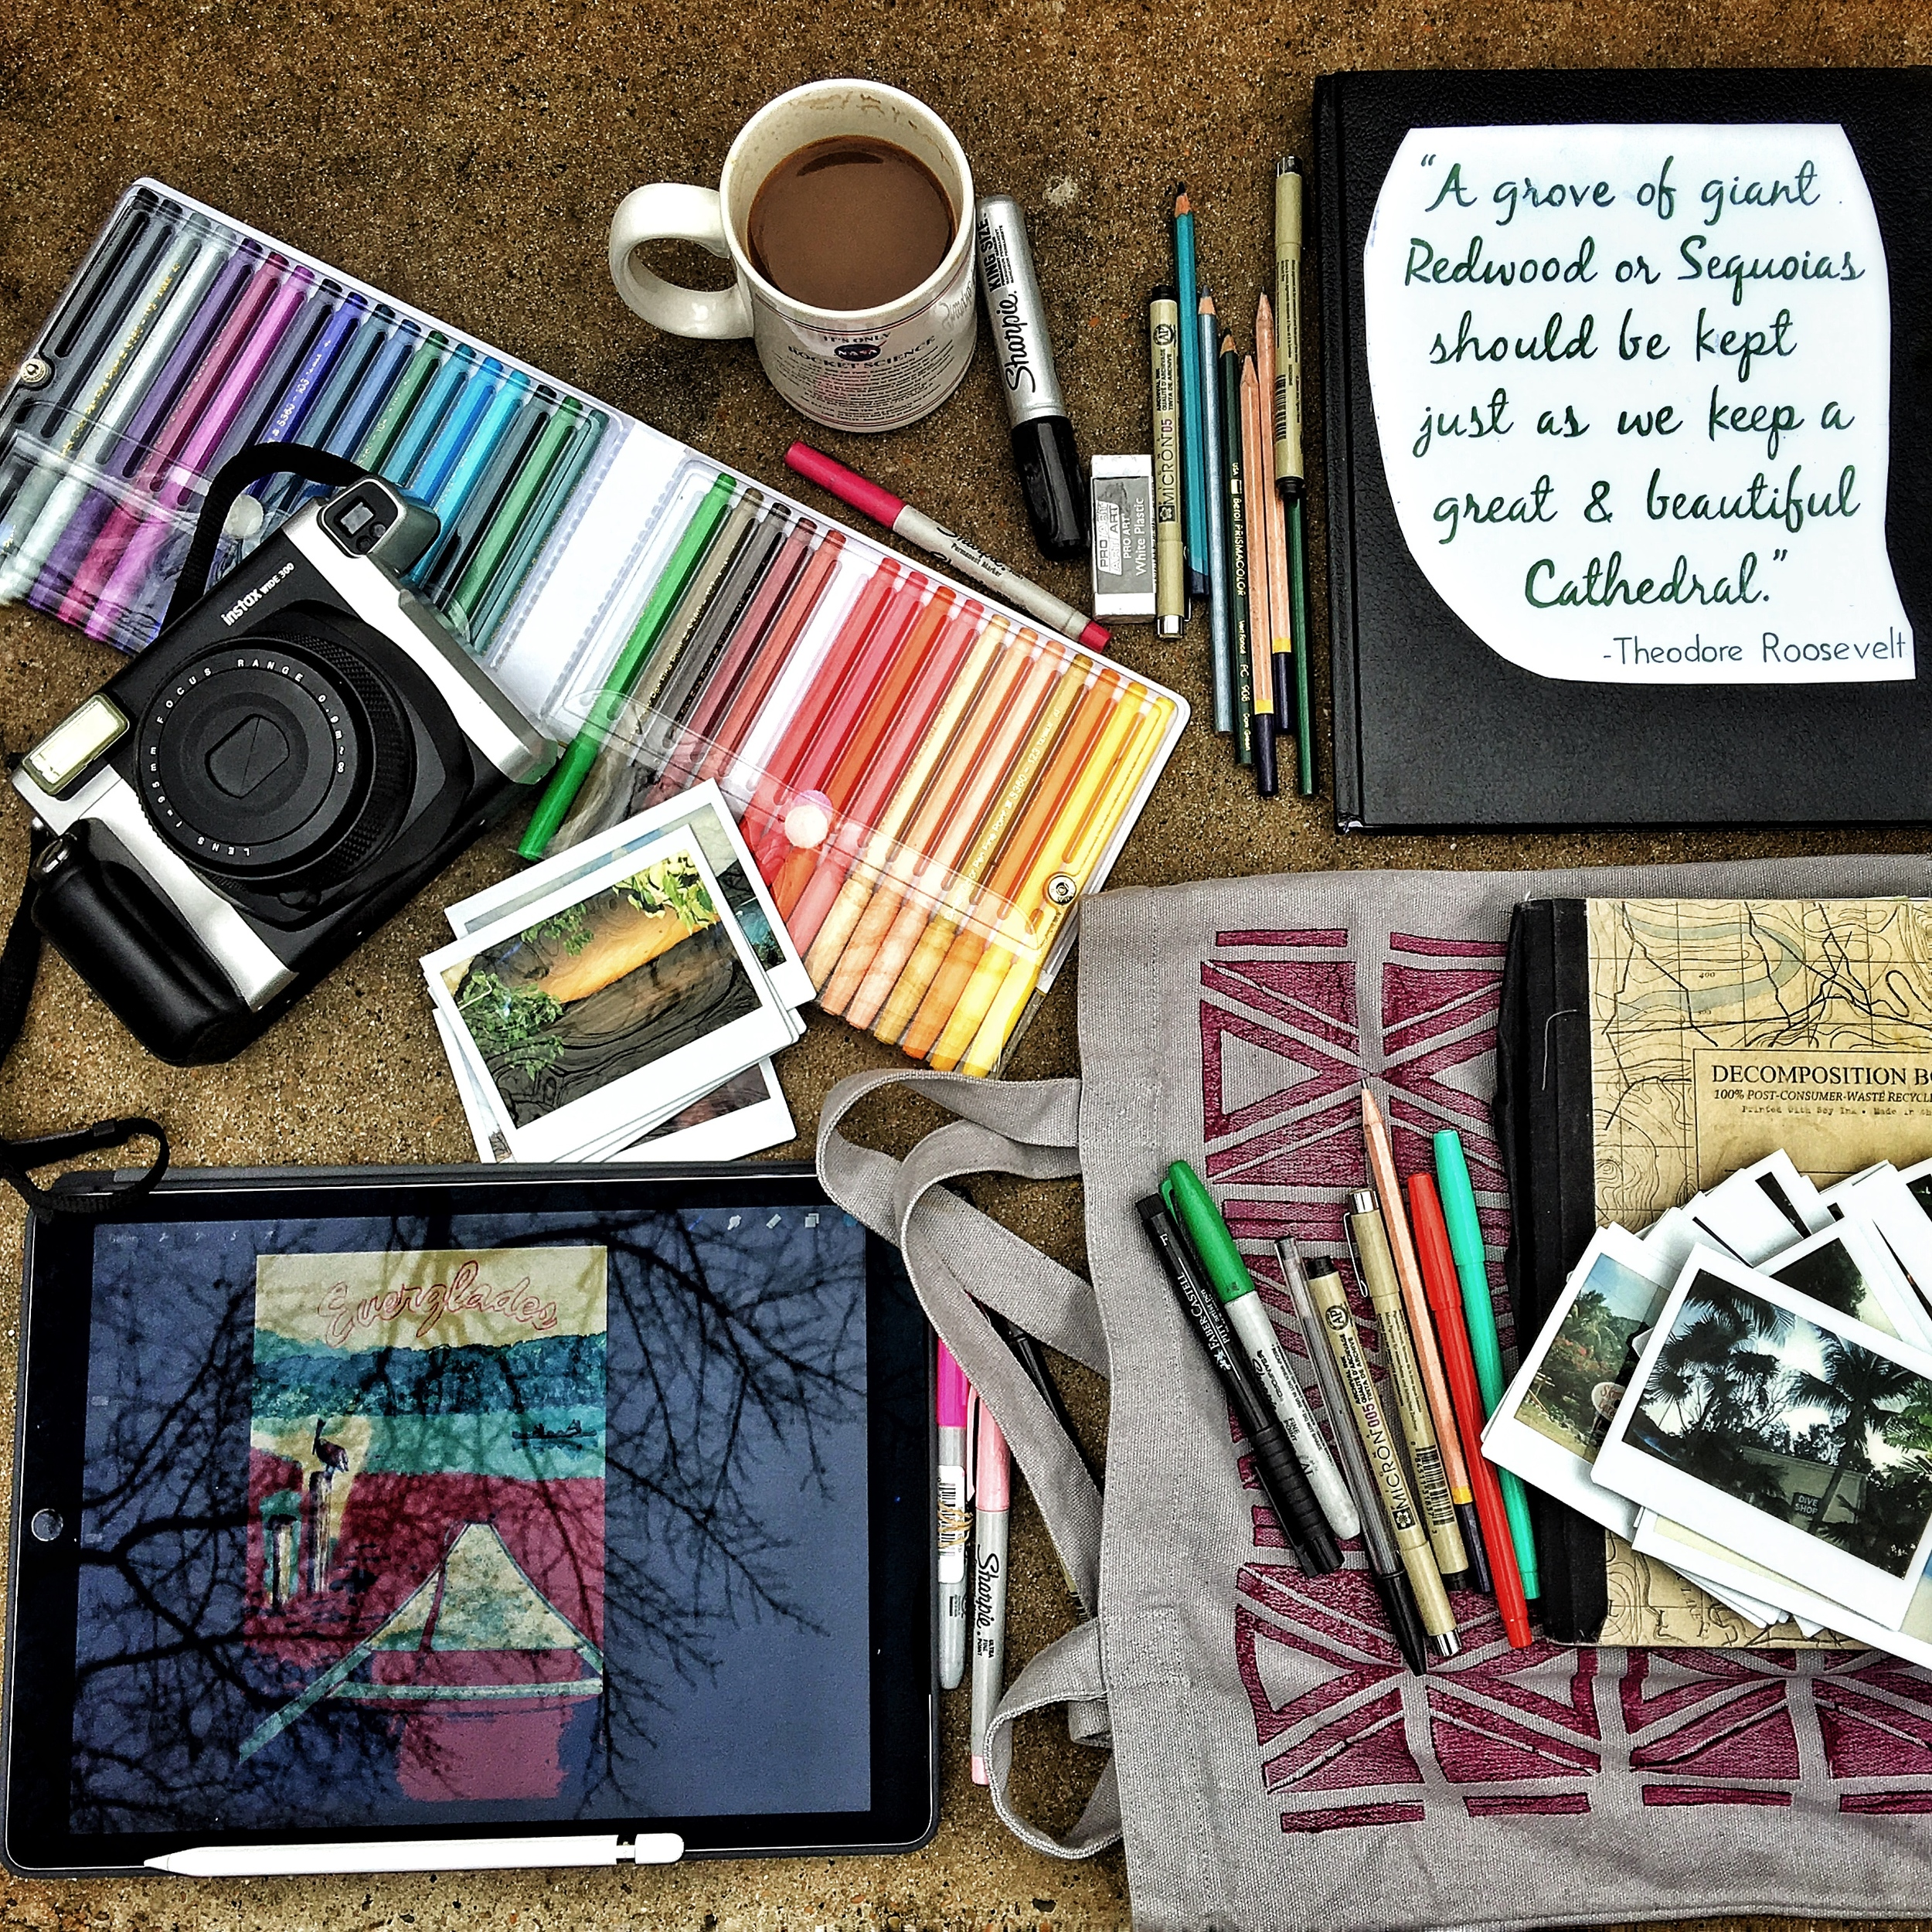 Artist bag spills over in the Great Smoky Mountains to reveal an iPad Pro, Apple Pencil, Pentel pens, and other sketching goodies. Now, to find the time...